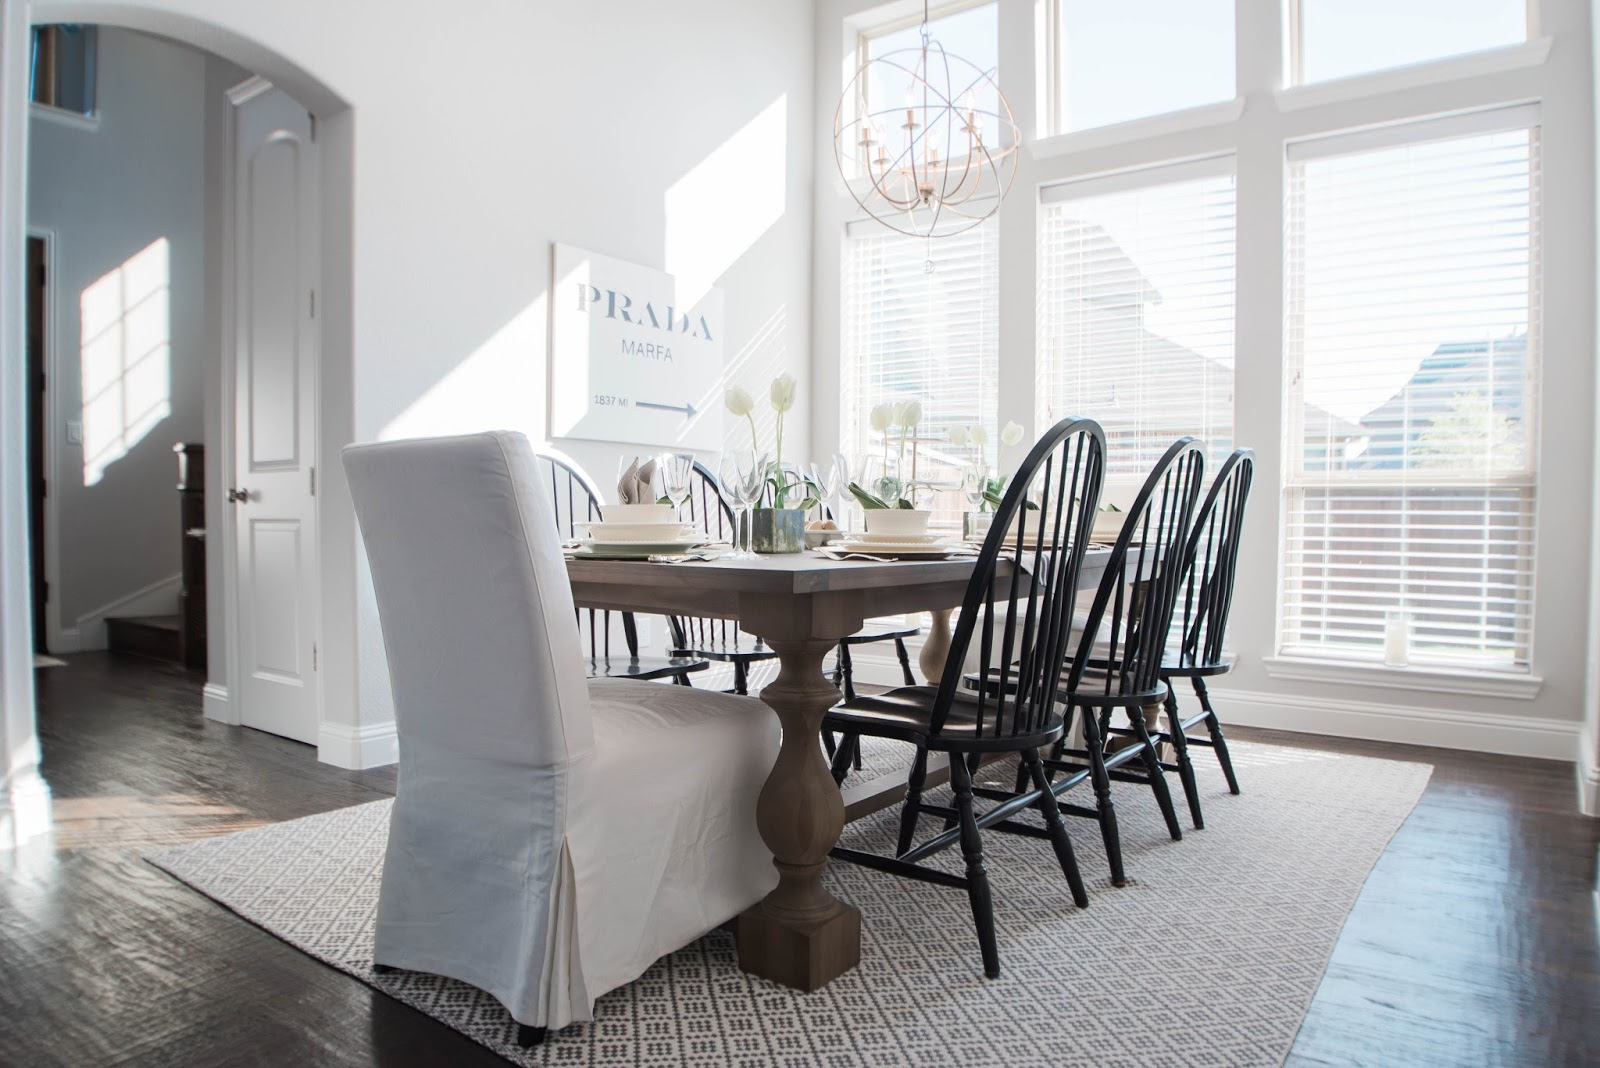 In My House But I Am Not Sure Want To Repeat That Same Look The Kitchen Desperate Need Select Dining Casual Chairs For